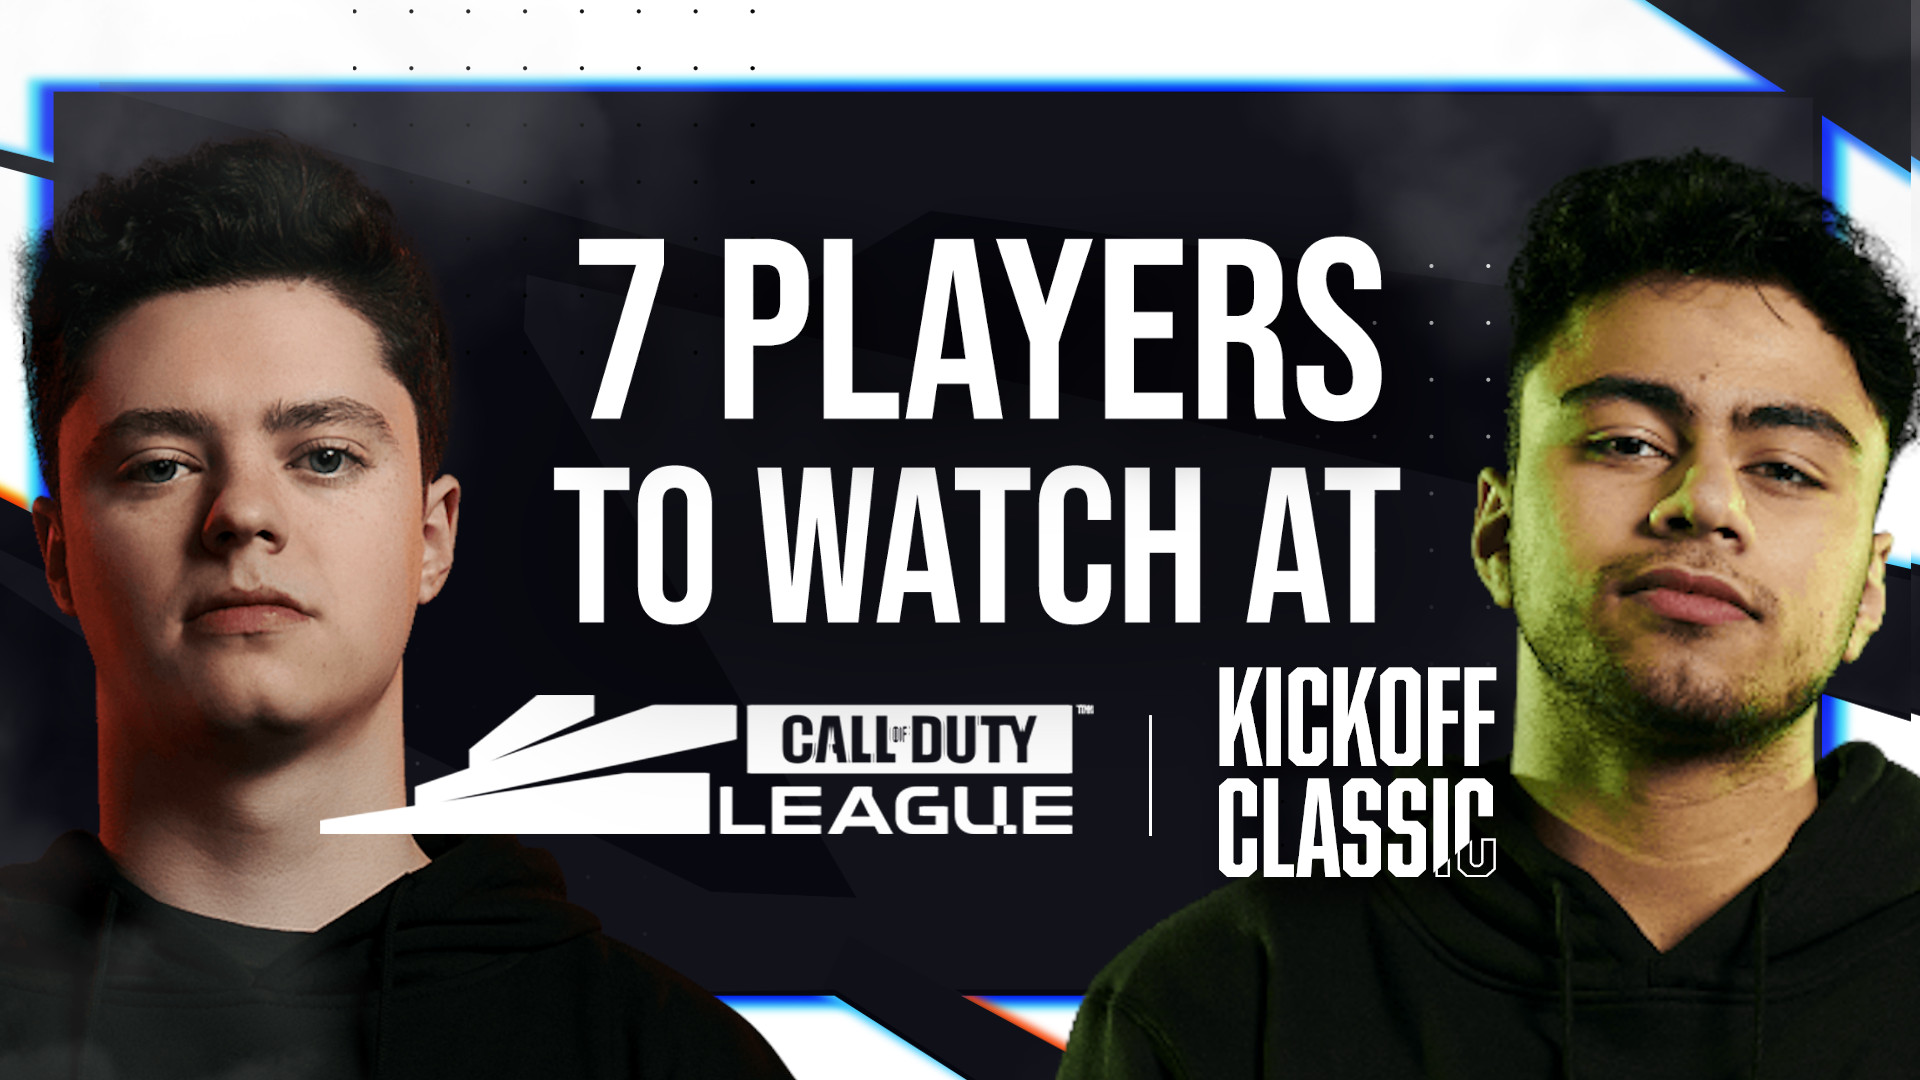 7 players to watch kickoff classic